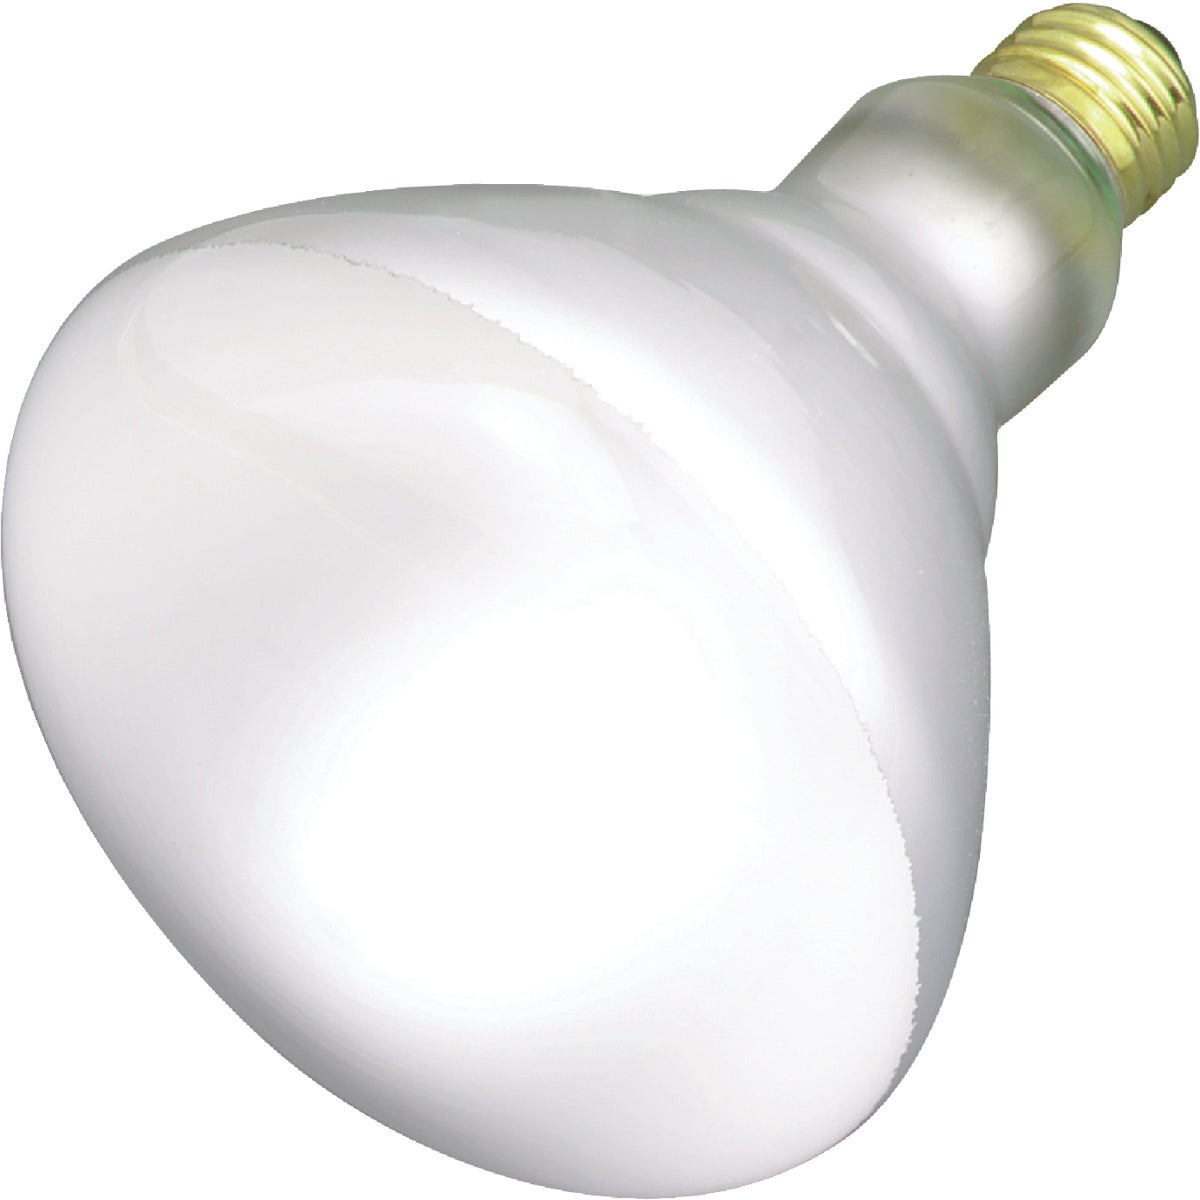 65W REFLECTOR FLOOD BULB - 04242 by Westinghouse Lightng